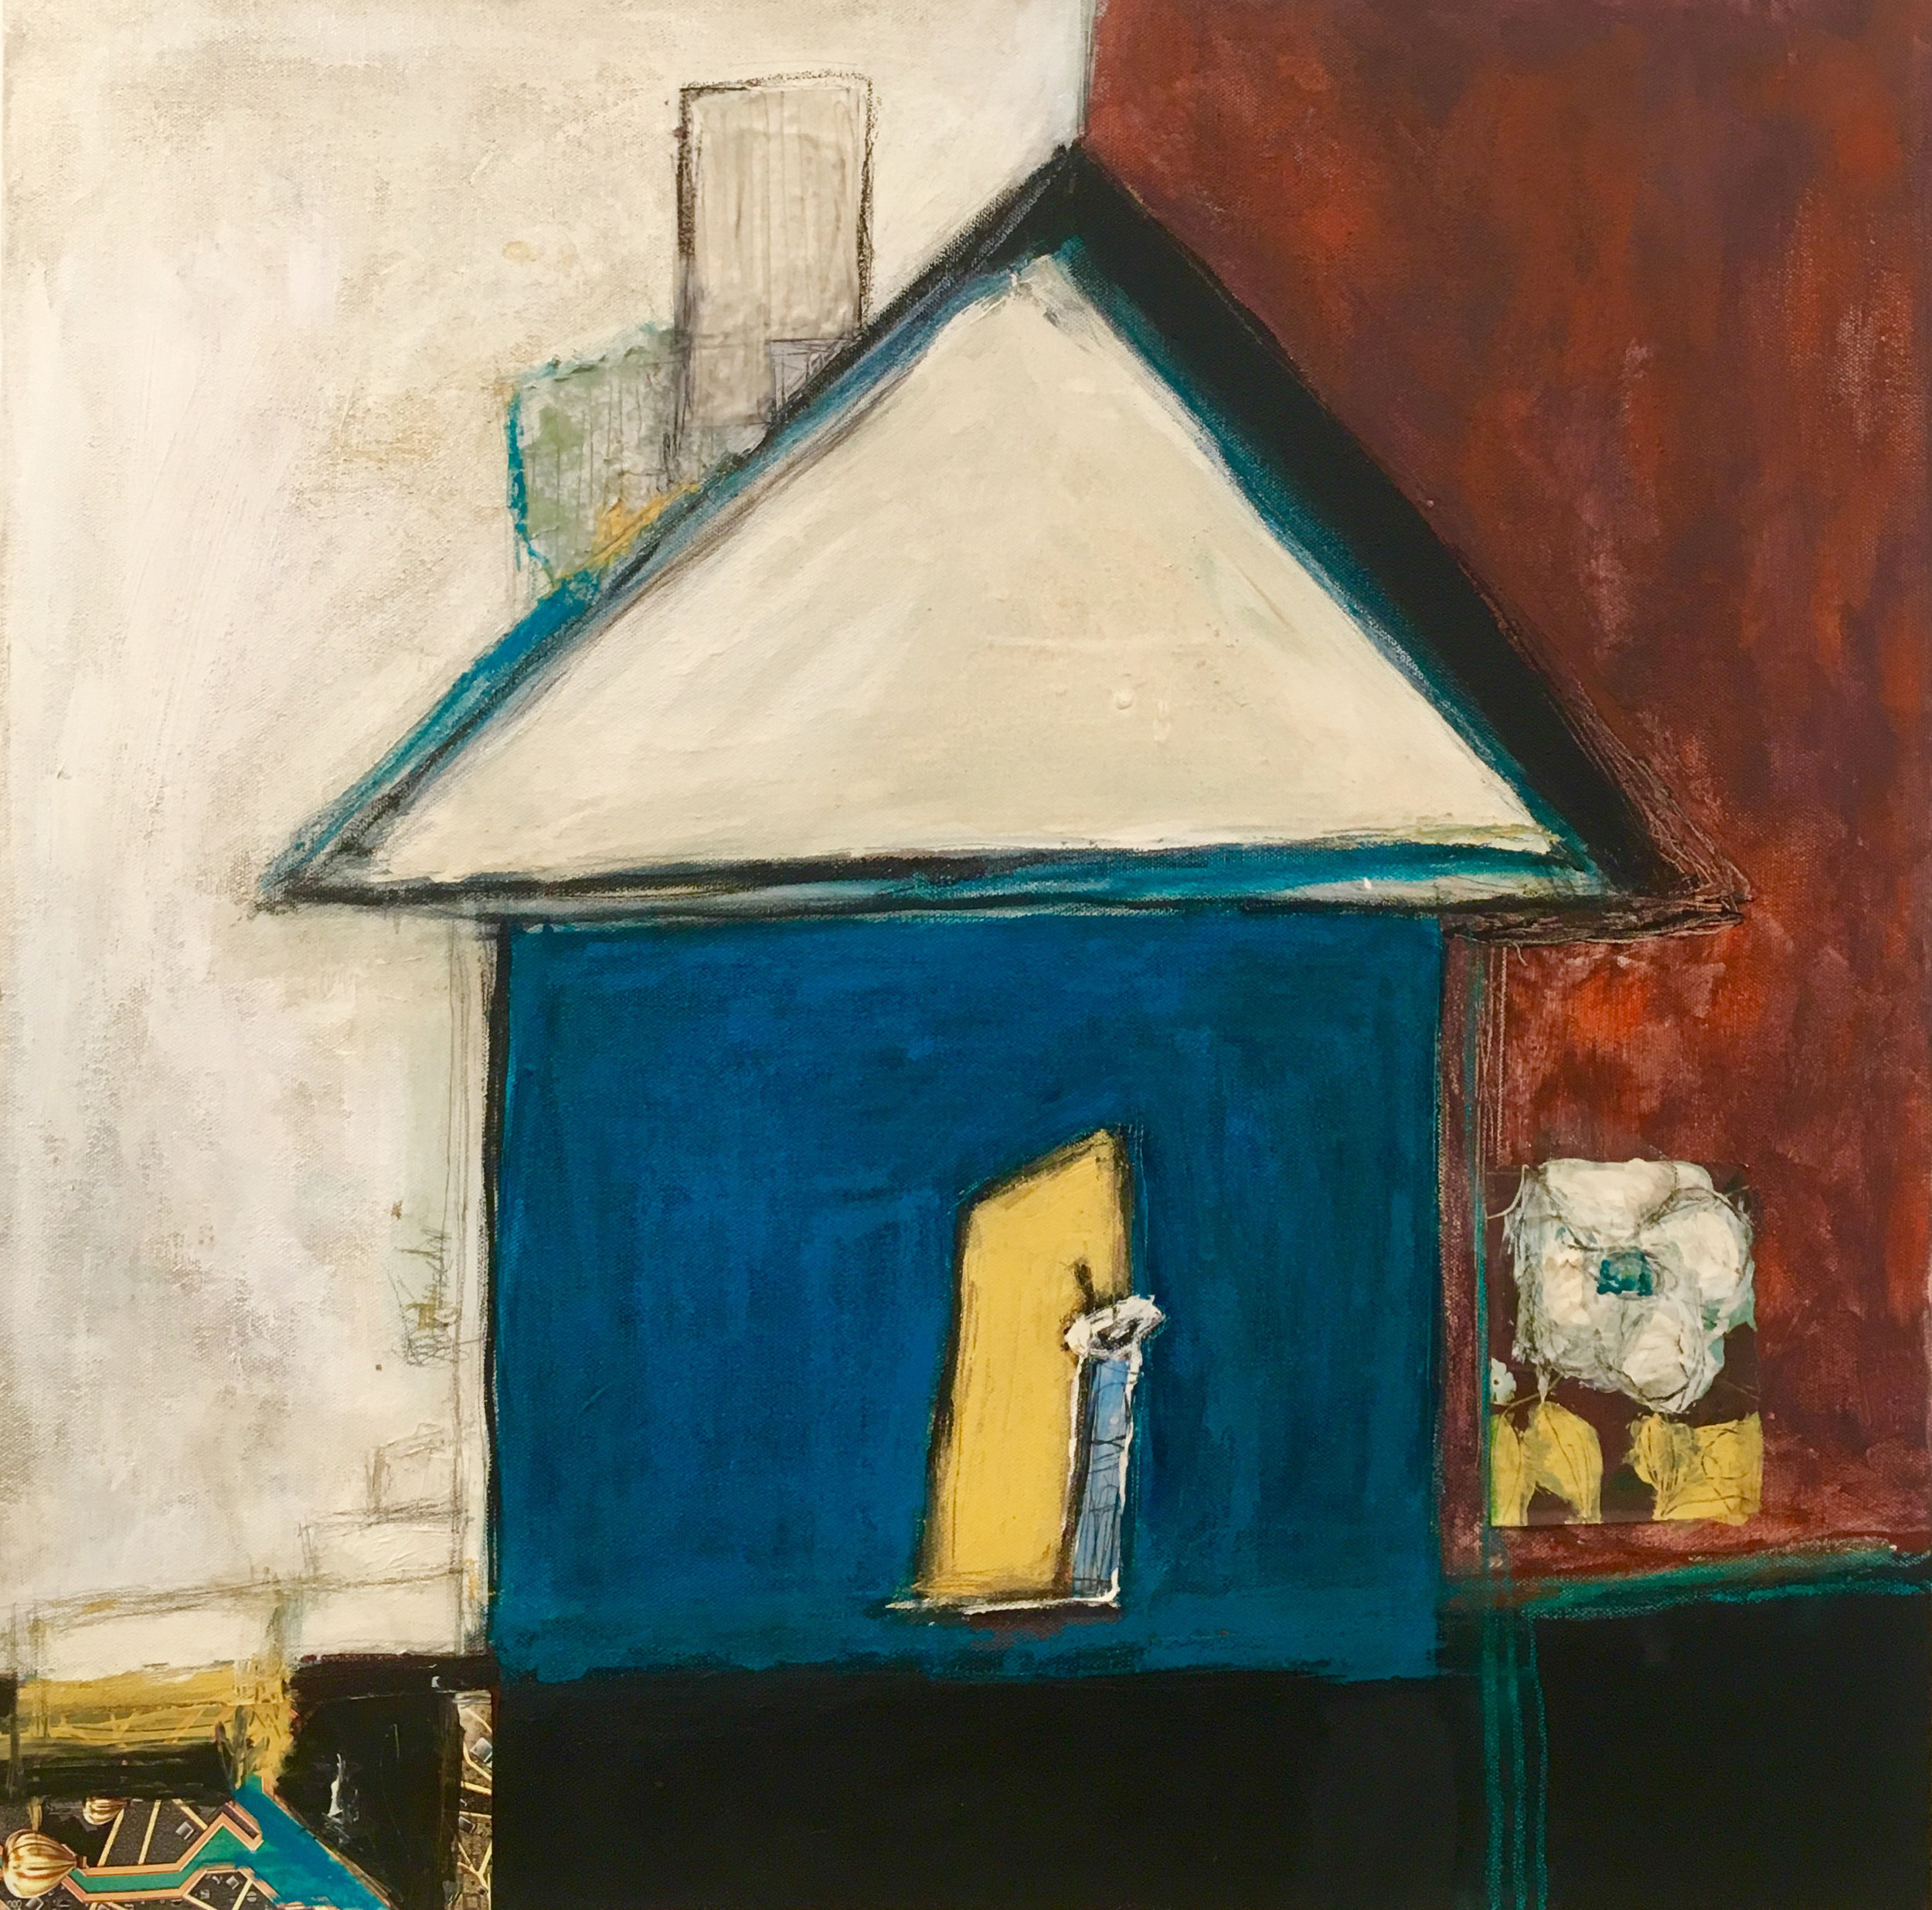 """Turquoise Playhouse , acrylic, oil, pencil, tar, pastel, linen tape, wallpaper, found paper, shellac on canvas, 24"""" x 24"""", sold"""